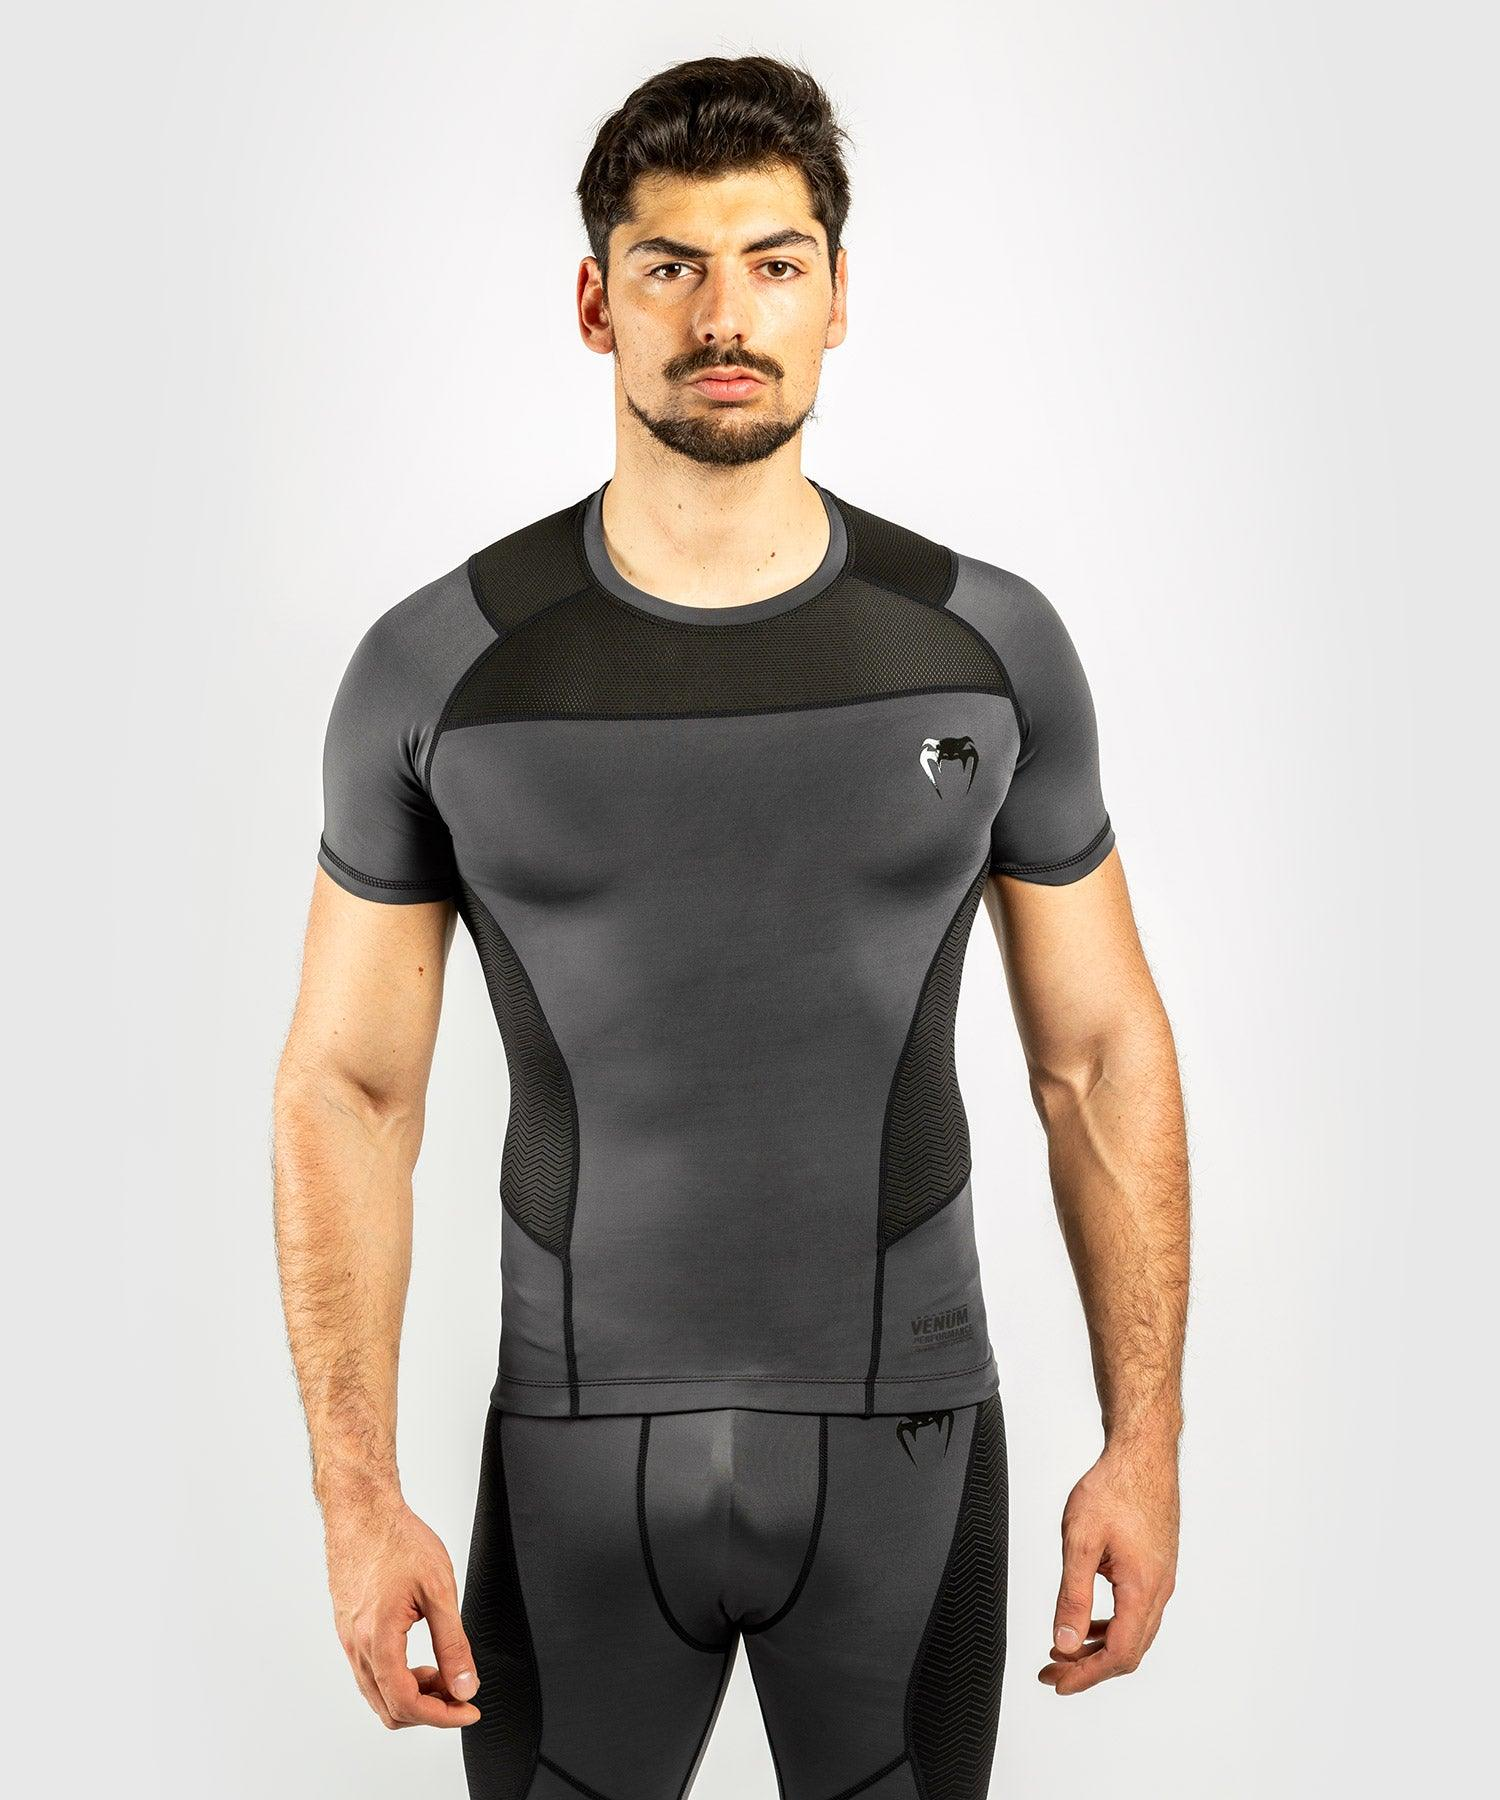 Venum G-Fit Rashguard - Short Sleeves - Grey/Black picture 1